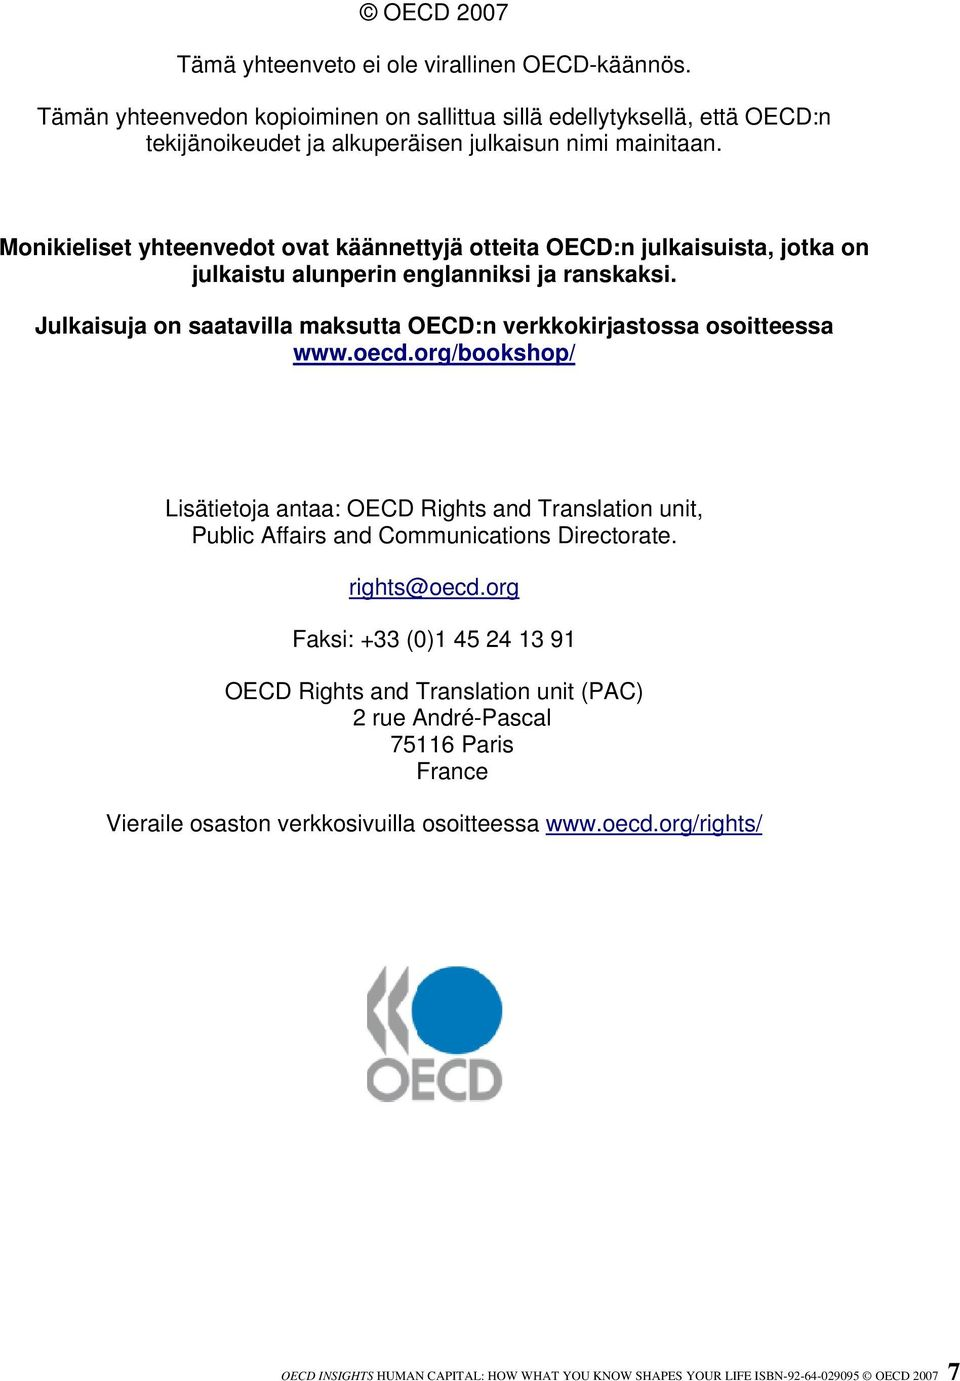 Julkaisuja on saatavilla maksutta OECD:n verkkokirjastossa osoitteessa www.oecd.org/bookshop/ Lisätietoja antaa: OECD Rights and Translation unit, Public Affairs and Communications Directorate.